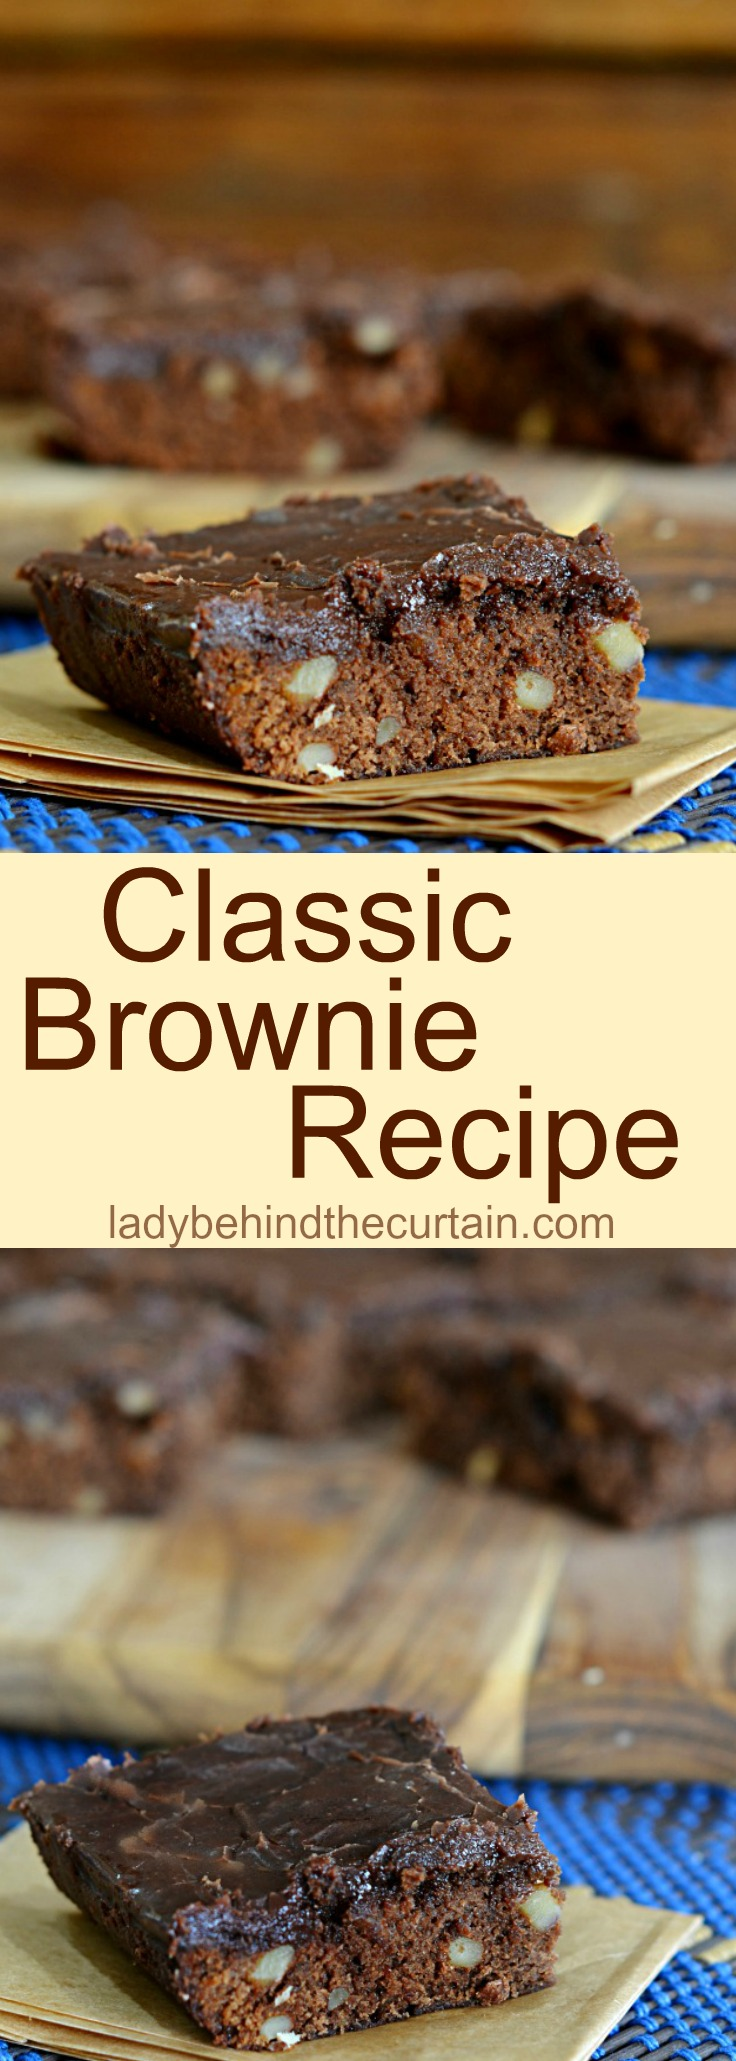 Classic Brownie Recipe| chocolate, easy brownie recipe, summer barbecue recipe, family reunion recipe, potluck recipe